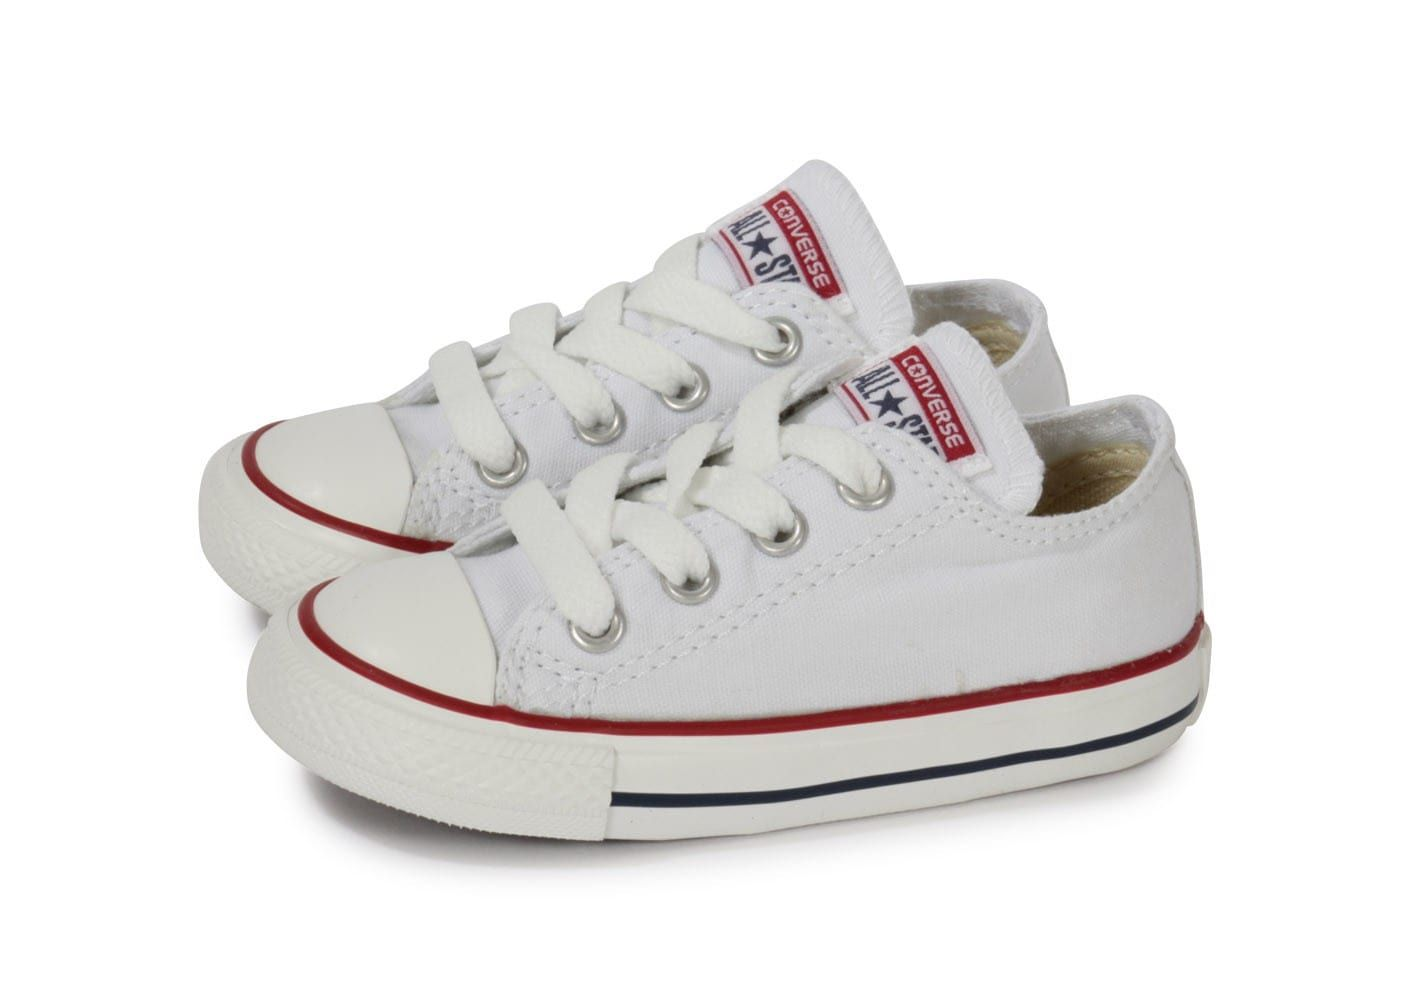 converse fille taille 22